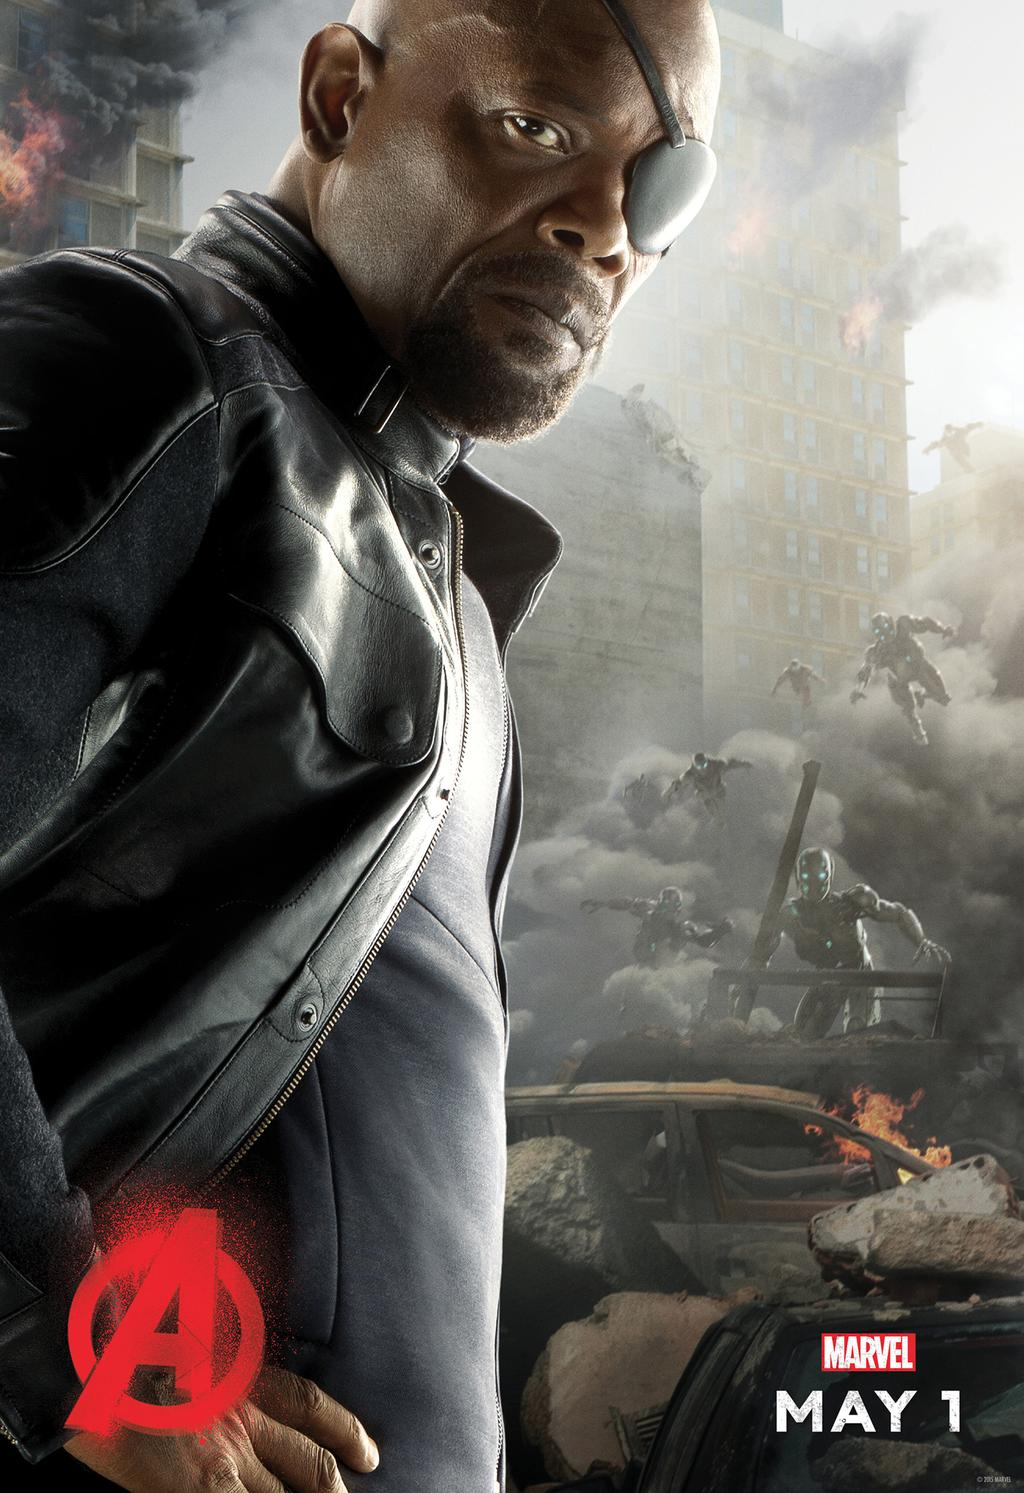 Age of Ultron Fury poster